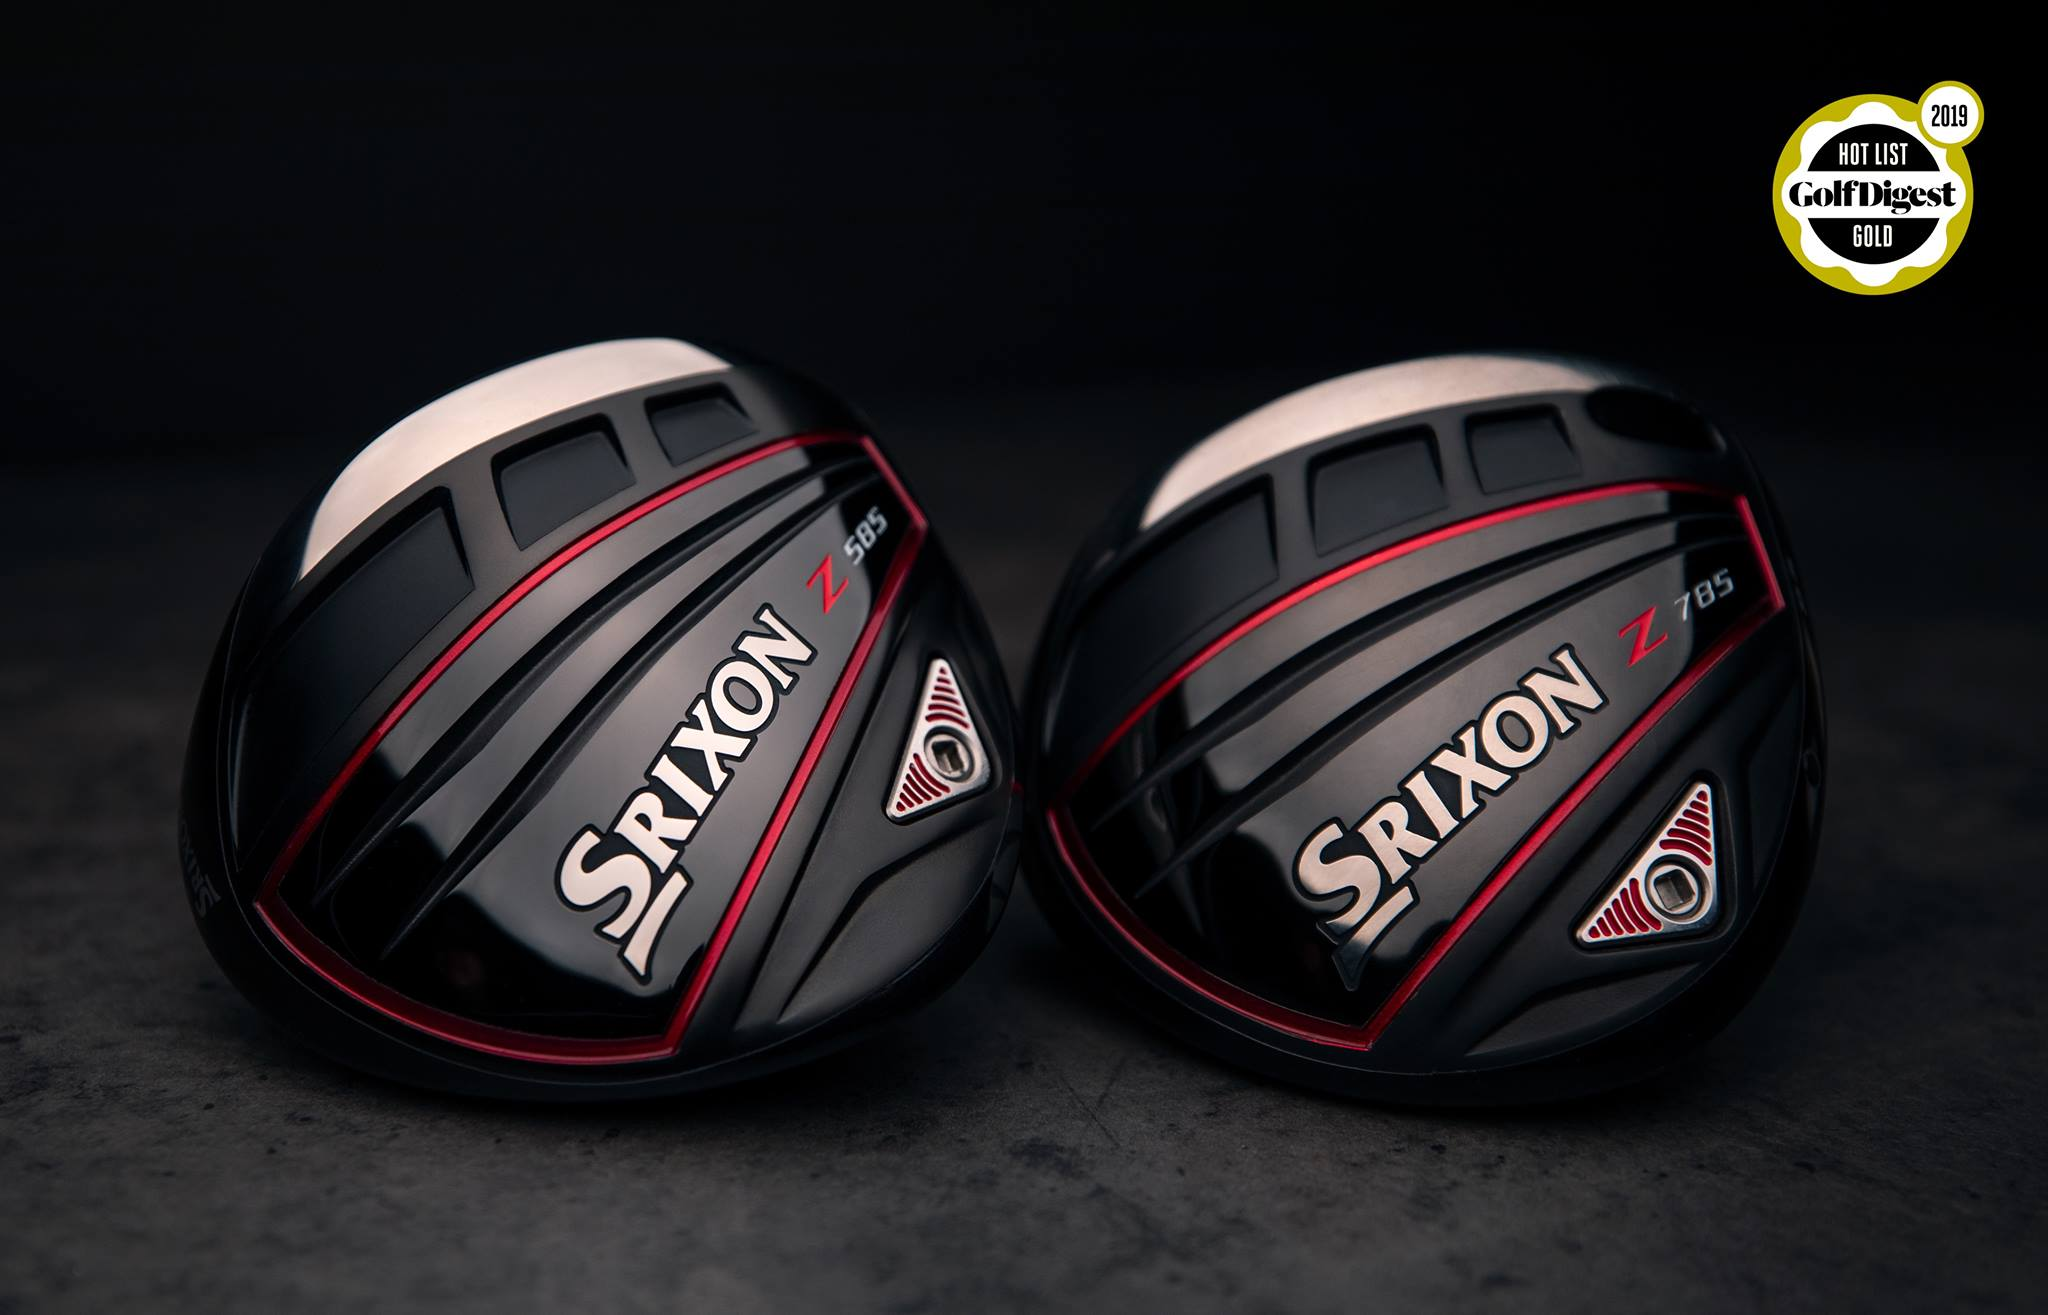 Srixon Golf Ball Fitting at Golf & Ski Warehouse - April 14